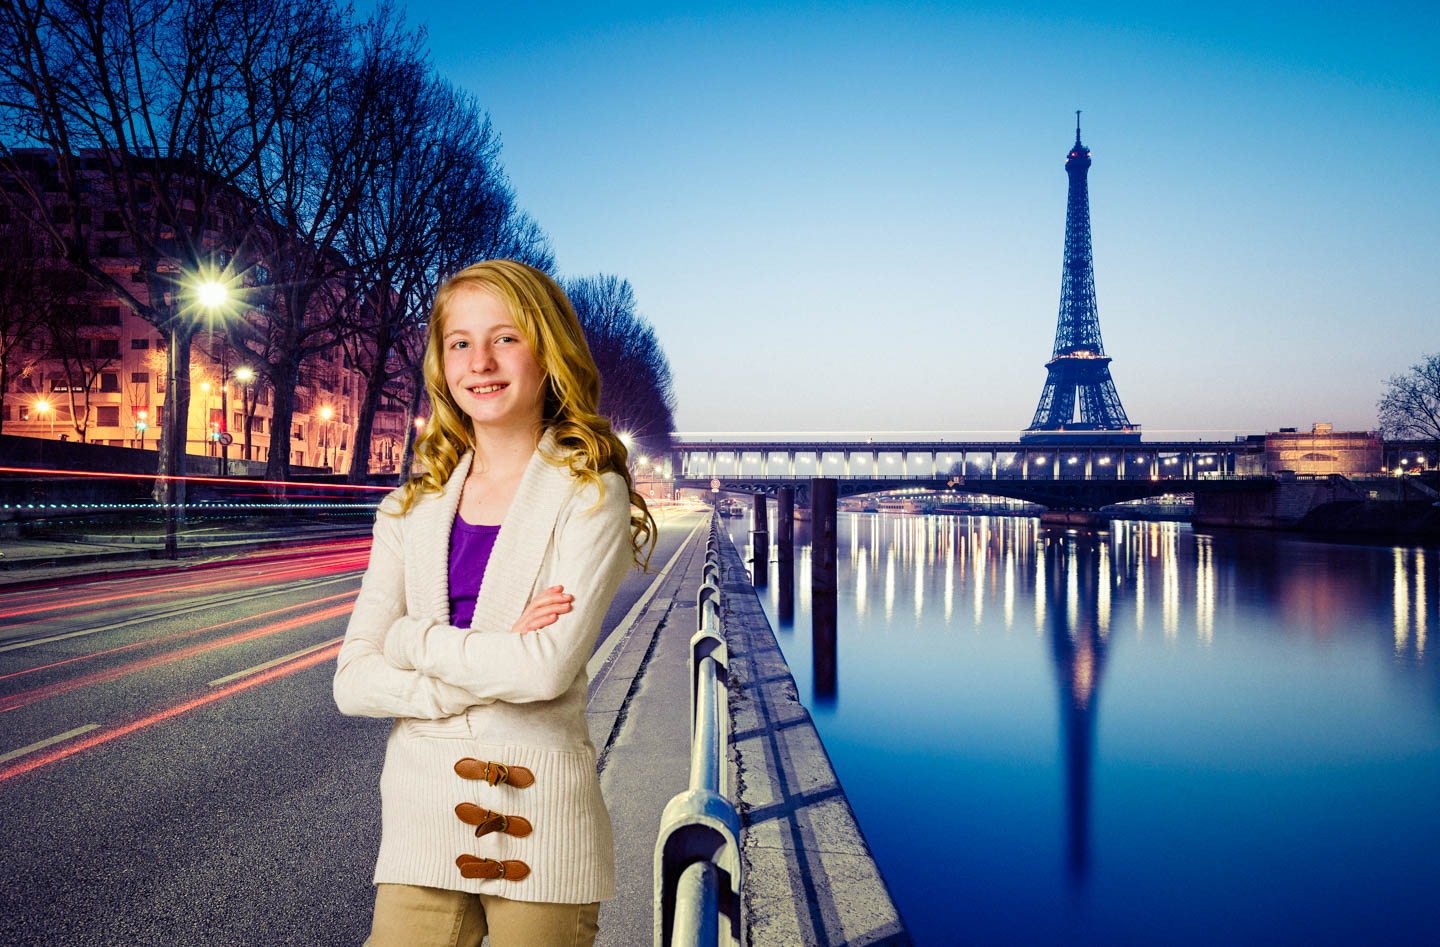 Maren is excited about Paris and Photoshop is cheaper than a plane ticket